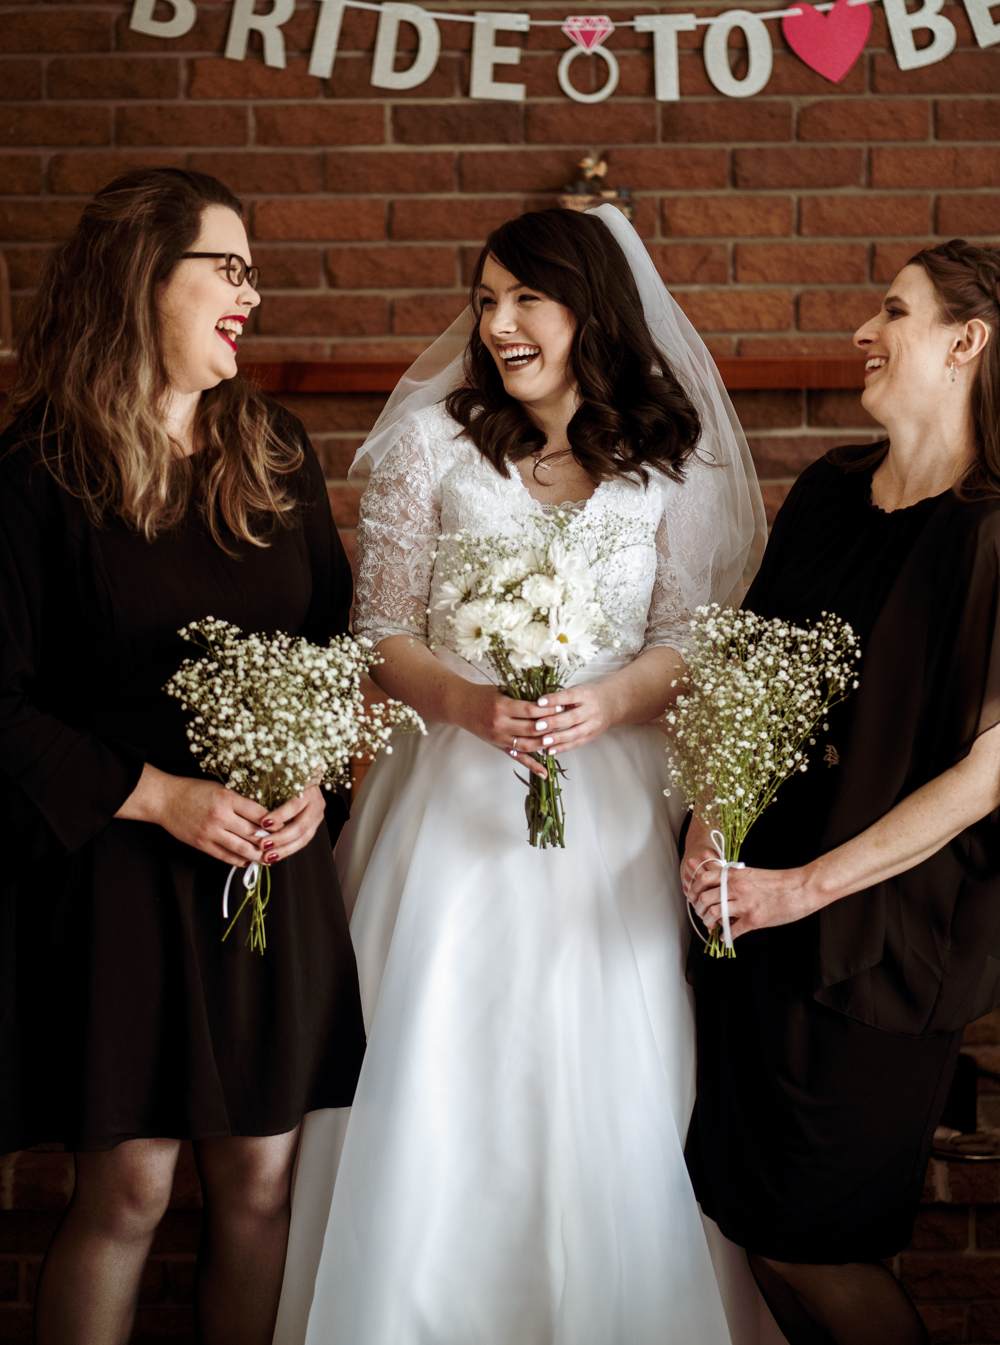 My bridesmaids are beautiful and hilarious.